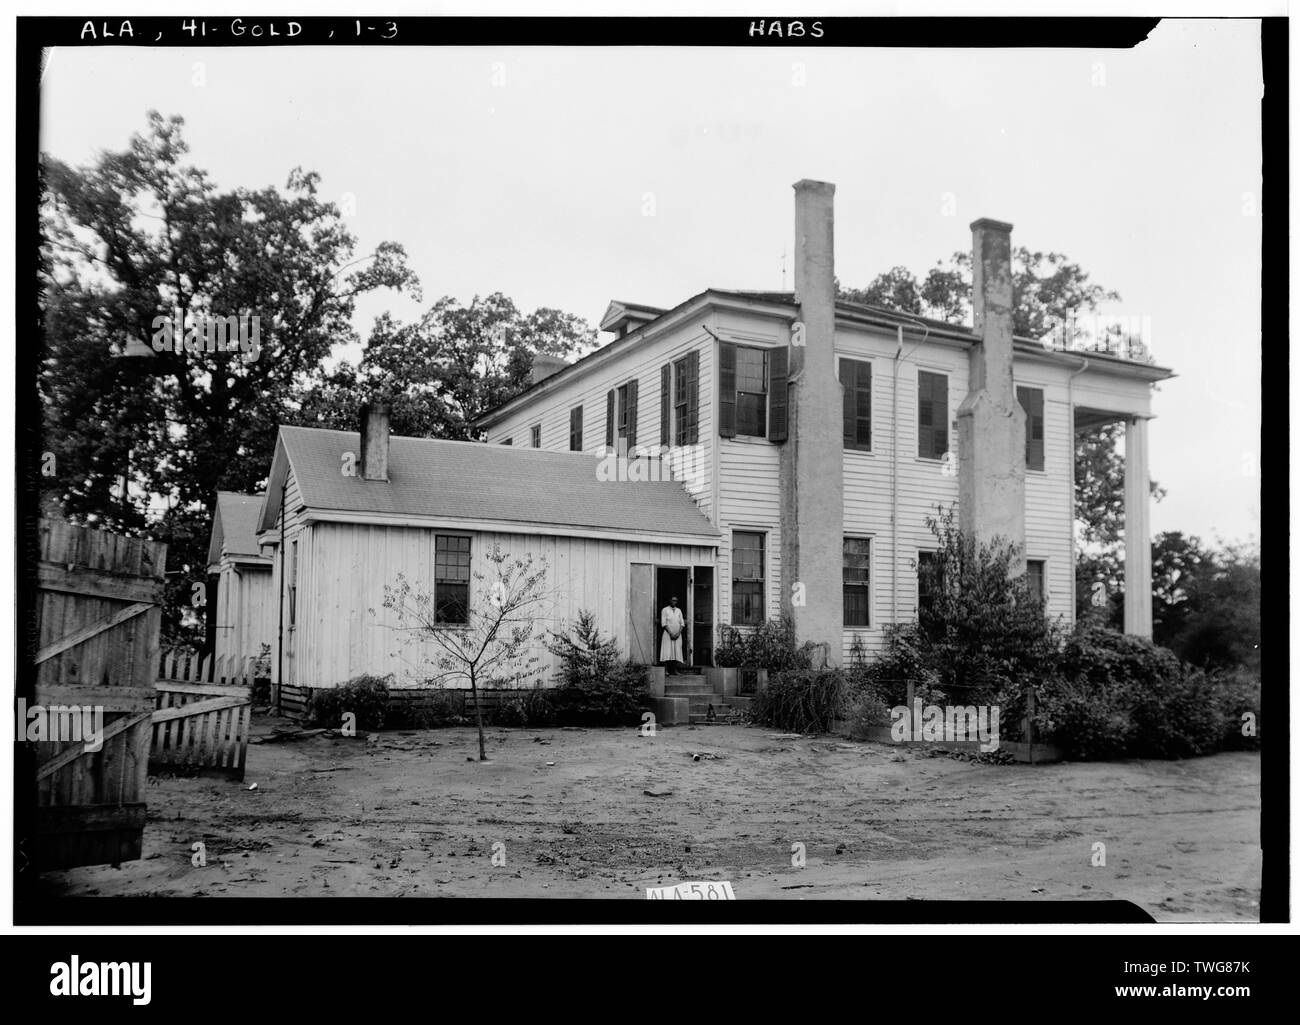 Historic American Buildings Survey W. N. Manning, Photographer, September 10, 1935 REAR (EAST) AND NORTH SIDE - James Ellington House, Oak Bowery Road vicinity, Gold Hill, Lee County, AL - Stock Image